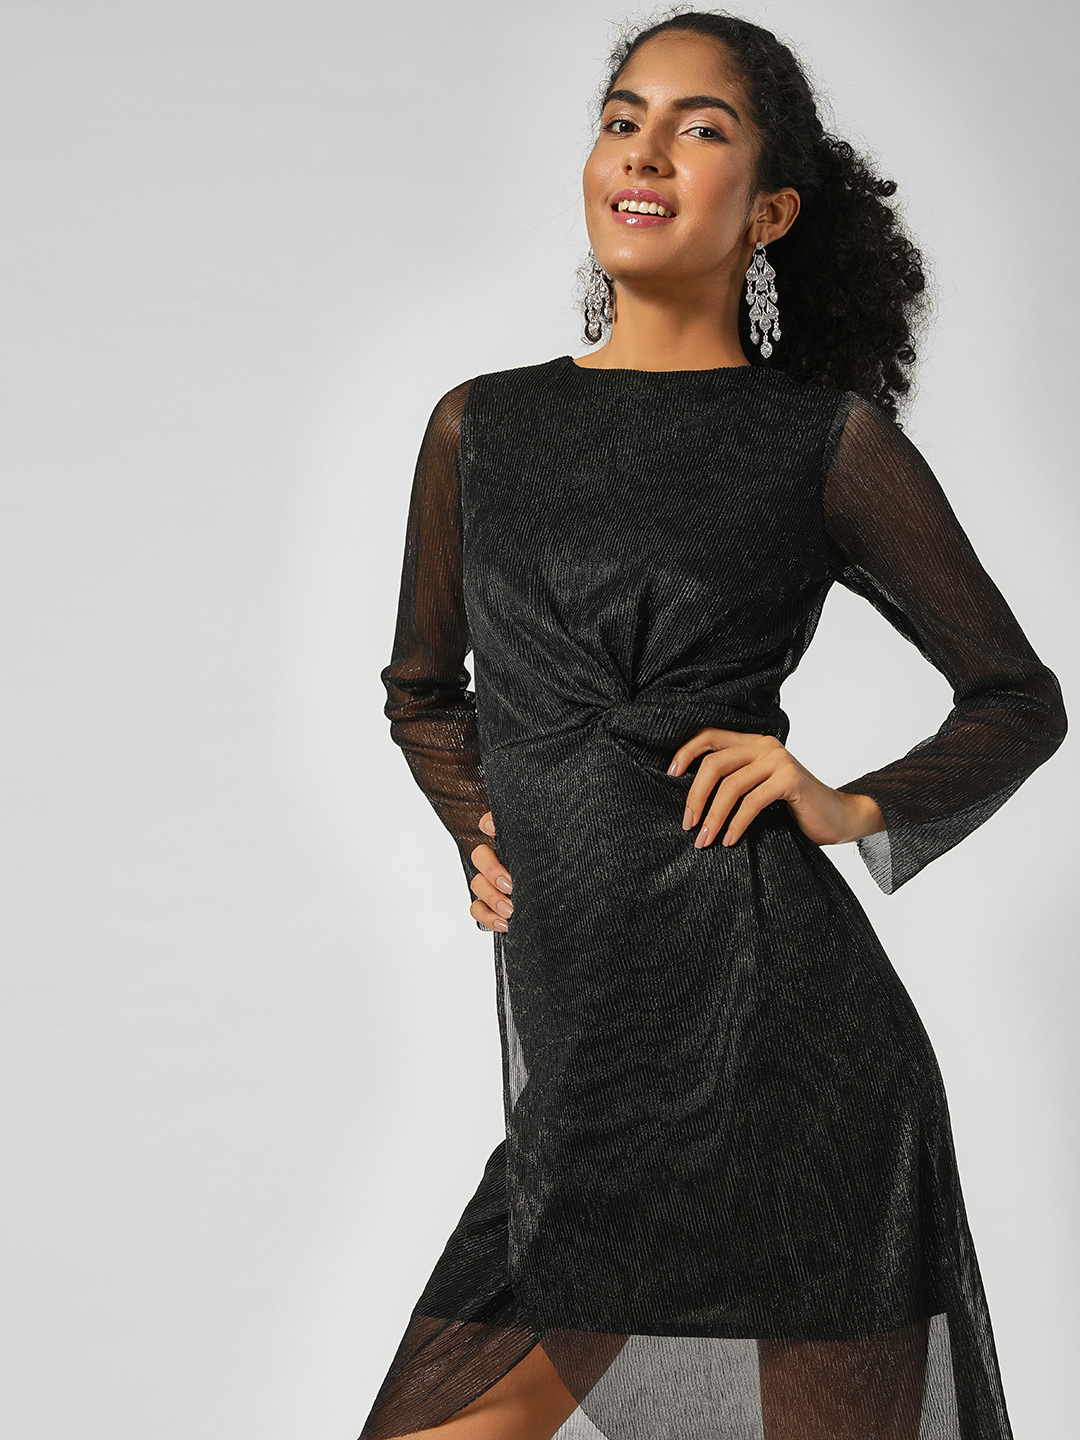 HEY Black Plisse Metallic Shift Dress 1